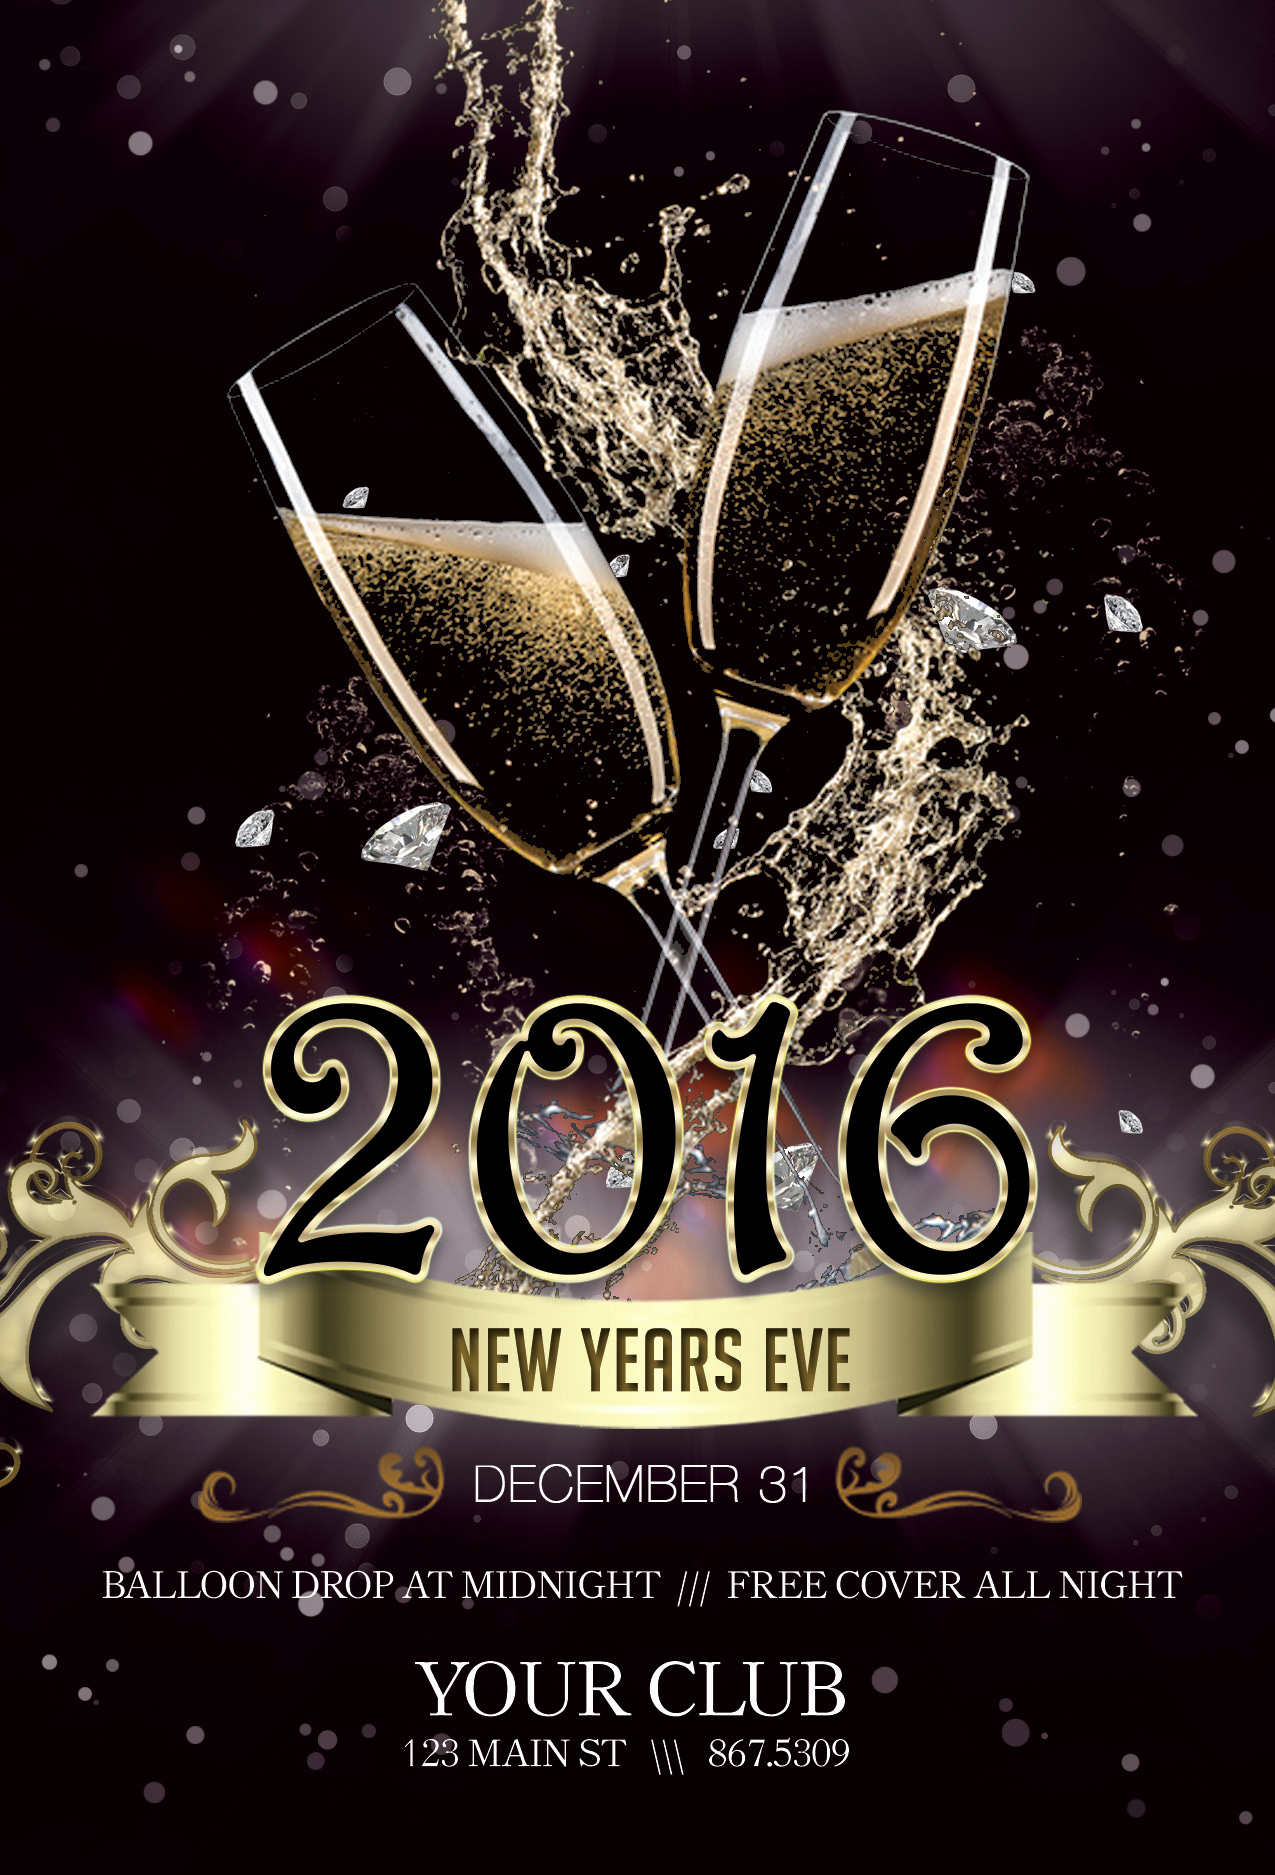 New Years Eve Flyer Awesome New Years Eve Flyer Club Flyer Fresh View Concepts